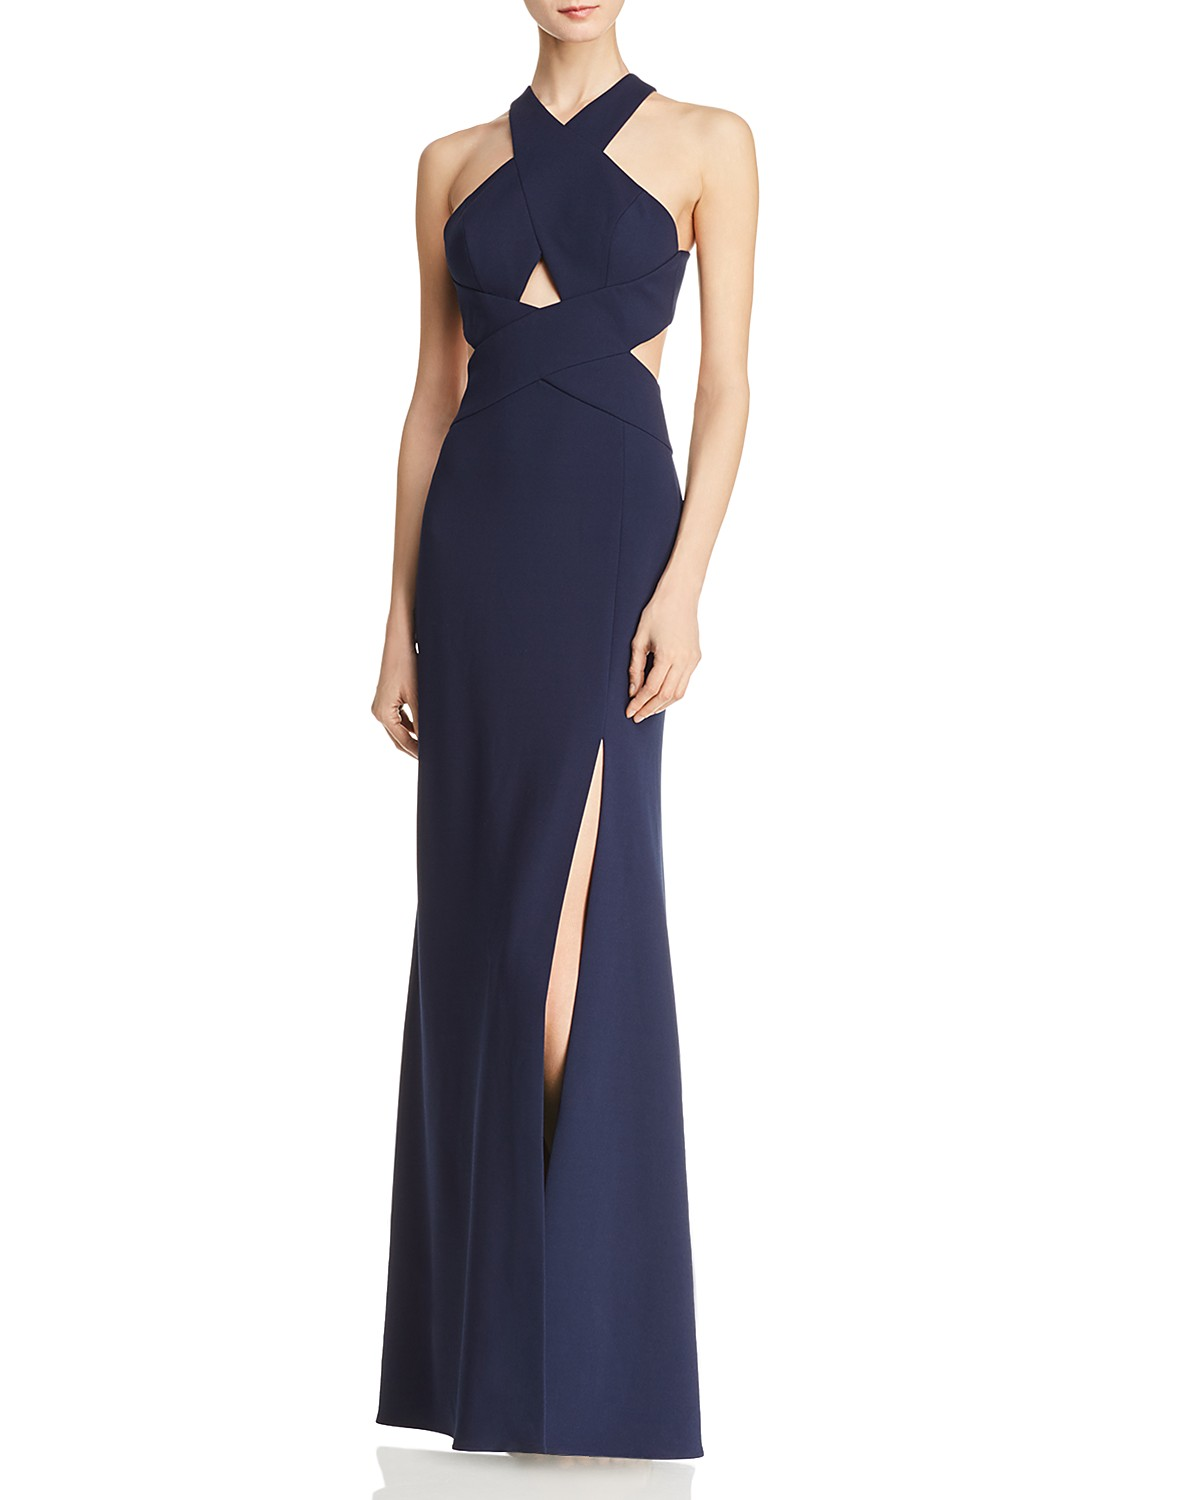 BCBGMAXAZRIA Crossover Cutout Gown - 100% Exclusive | Bloomingdale\'s